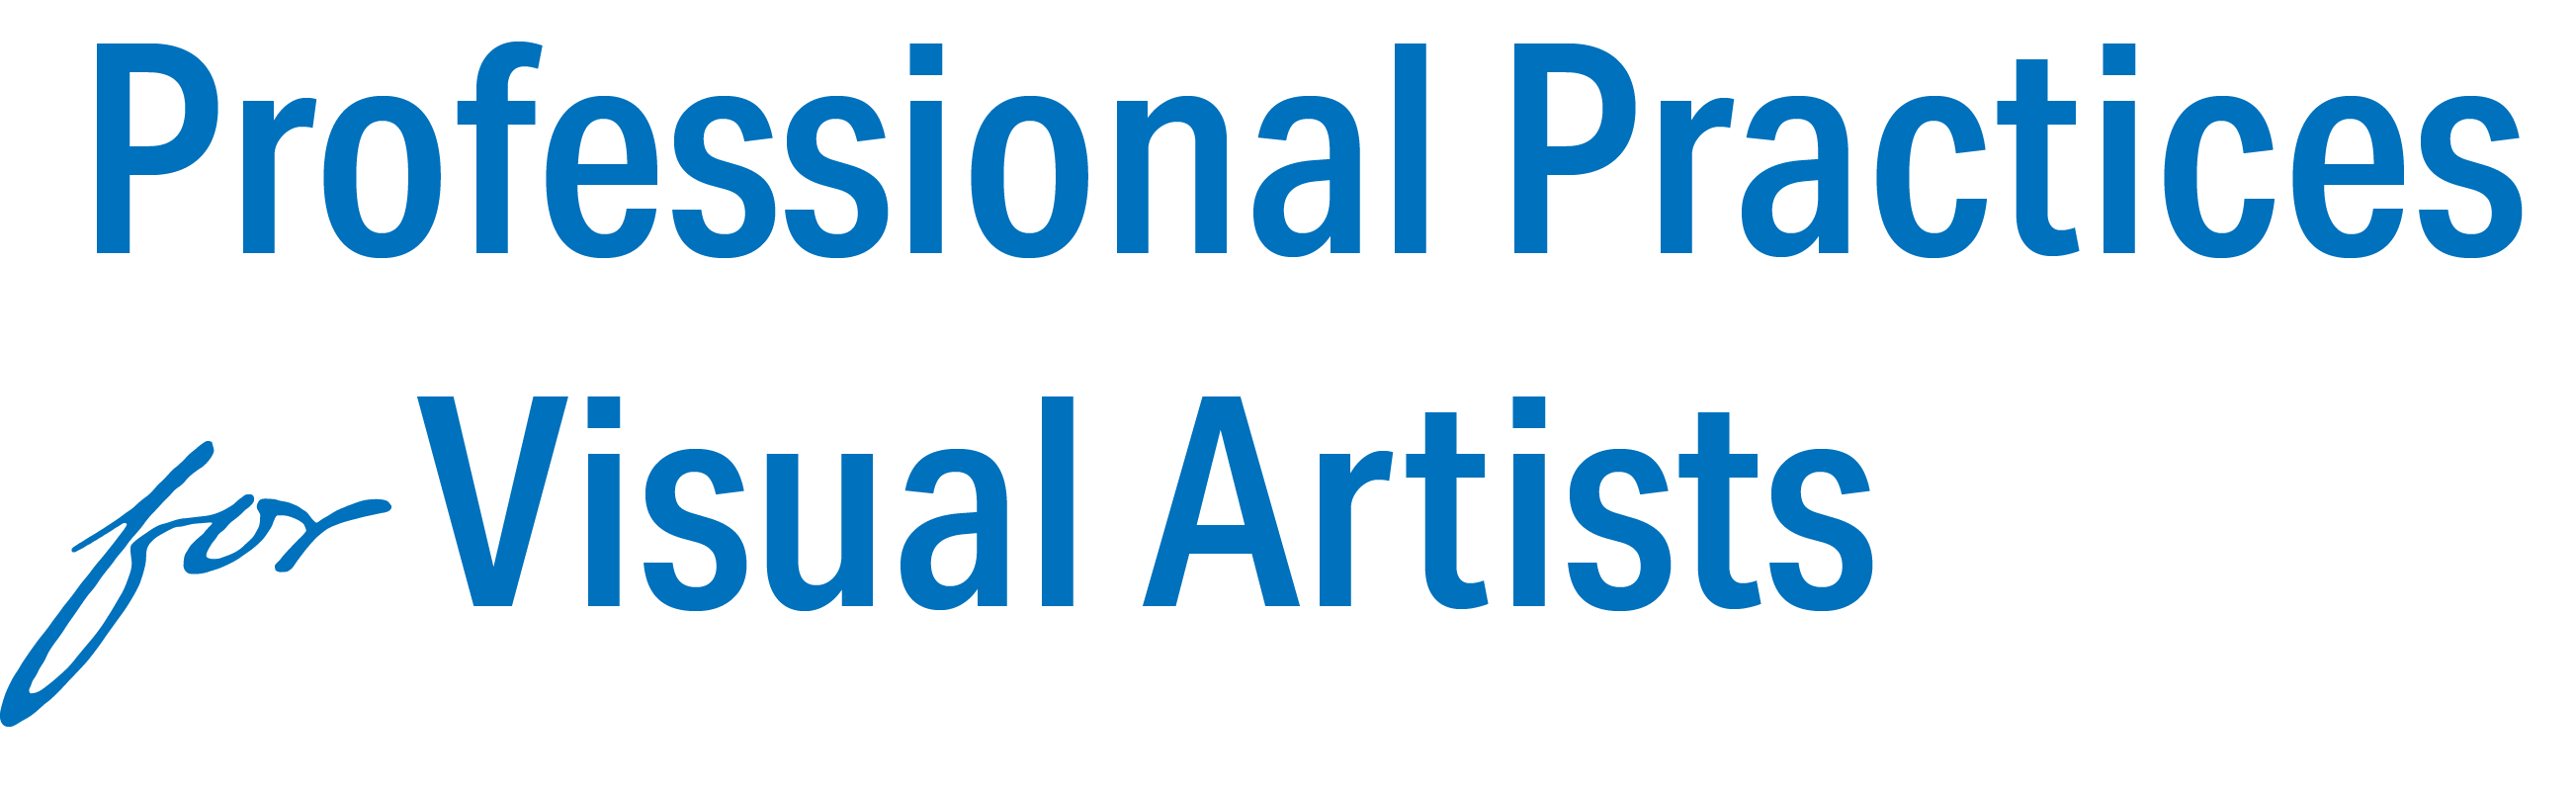 Professional Practices for Visual Artists